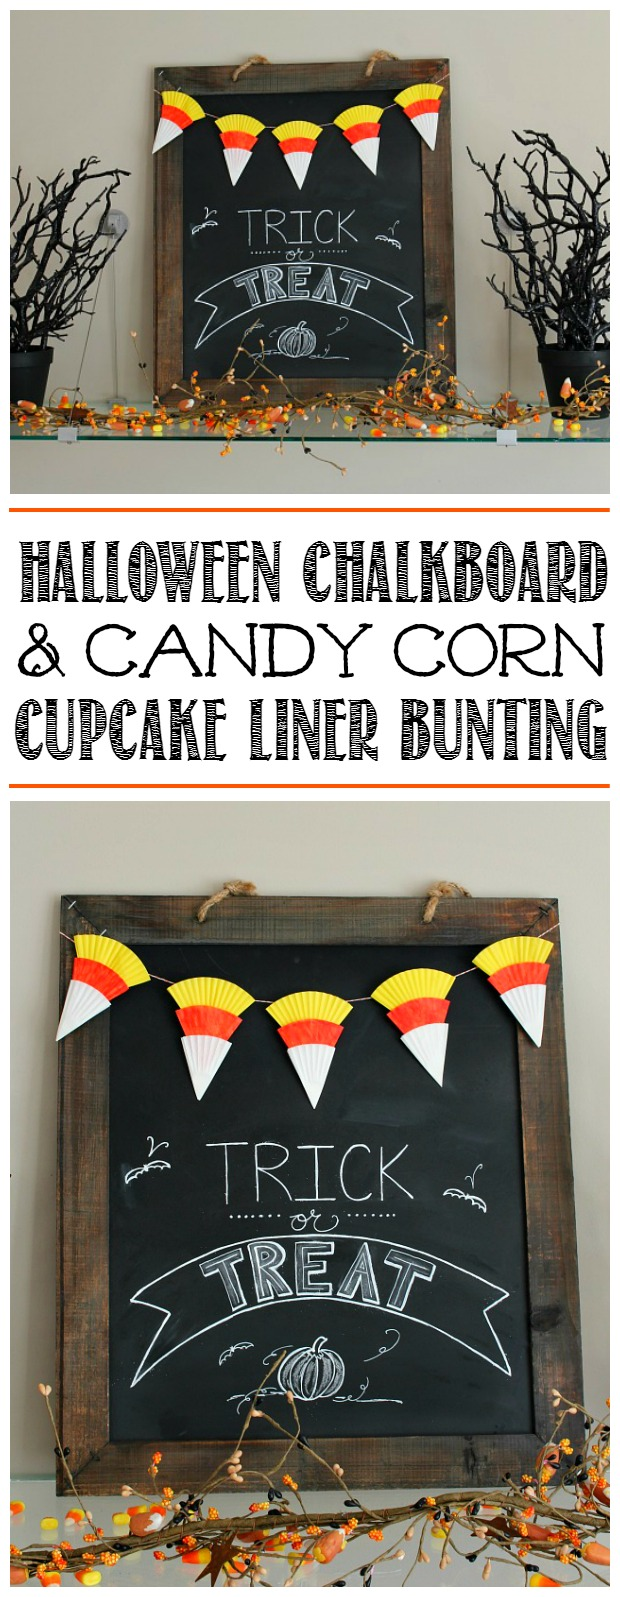 Halloween chalkboard and candy corn bunting.  This is so cute - great Halloween kids craft idea!